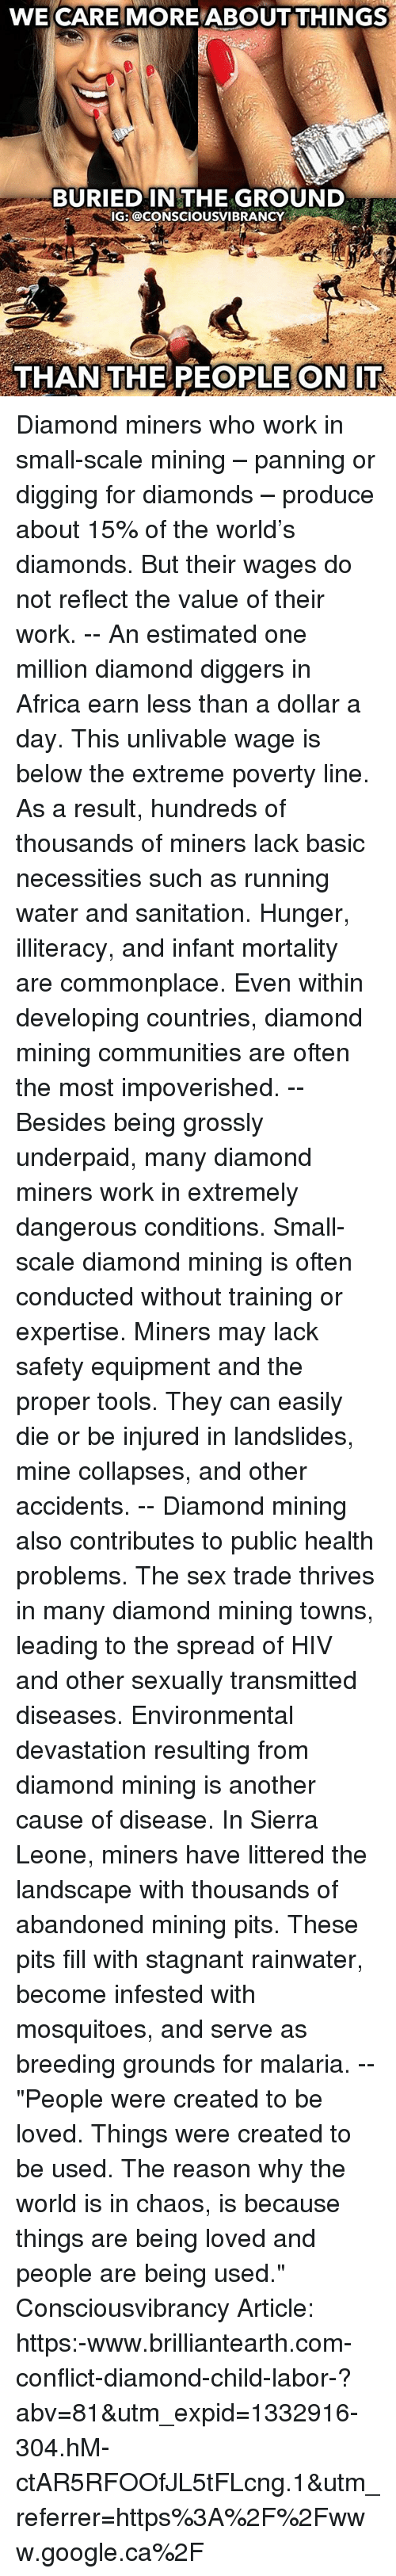 """Basicness: WE CARE MORE ABOUTTHINGS  BURIED IN THE GROUND  IG: @CONSCIOUSVIBRANCY  THAN THE REOPLE ONIT Diamond miners who work in small-scale mining – panning or digging for diamonds – produce about 15% of the world's diamonds. But their wages do not reflect the value of their work. -- An estimated one million diamond diggers in Africa earn less than a dollar a day. This unlivable wage is below the extreme poverty line. As a result, hundreds of thousands of miners lack basic necessities such as running water and sanitation. Hunger, illiteracy, and infant mortality are commonplace. Even within developing countries, diamond mining communities are often the most impoverished. -- Besides being grossly underpaid, many diamond miners work in extremely dangerous conditions. Small-scale diamond mining is often conducted without training or expertise. Miners may lack safety equipment and the proper tools. They can easily die or be injured in landslides, mine collapses, and other accidents. -- Diamond mining also contributes to public health problems. The sex trade thrives in many diamond mining towns, leading to the spread of HIV and other sexually transmitted diseases. Environmental devastation resulting from diamond mining is another cause of disease. In Sierra Leone, miners have littered the landscape with thousands of abandoned mining pits. These pits fill with stagnant rainwater, become infested with mosquitoes, and serve as breeding grounds for malaria. -- """"People were created to be loved. Things were created to be used. The reason why the world is in chaos, is because things are being loved and people are being used."""" Consciousvibrancy Article: https:-www.brilliantearth.com-conflict-diamond-child-labor-?abv=81&utm_expid=1332916-304.hM-ctAR5RFOOfJL5tFLcng.1&utm_referrer=https%3A%2F%2Fwww.google.ca%2F"""